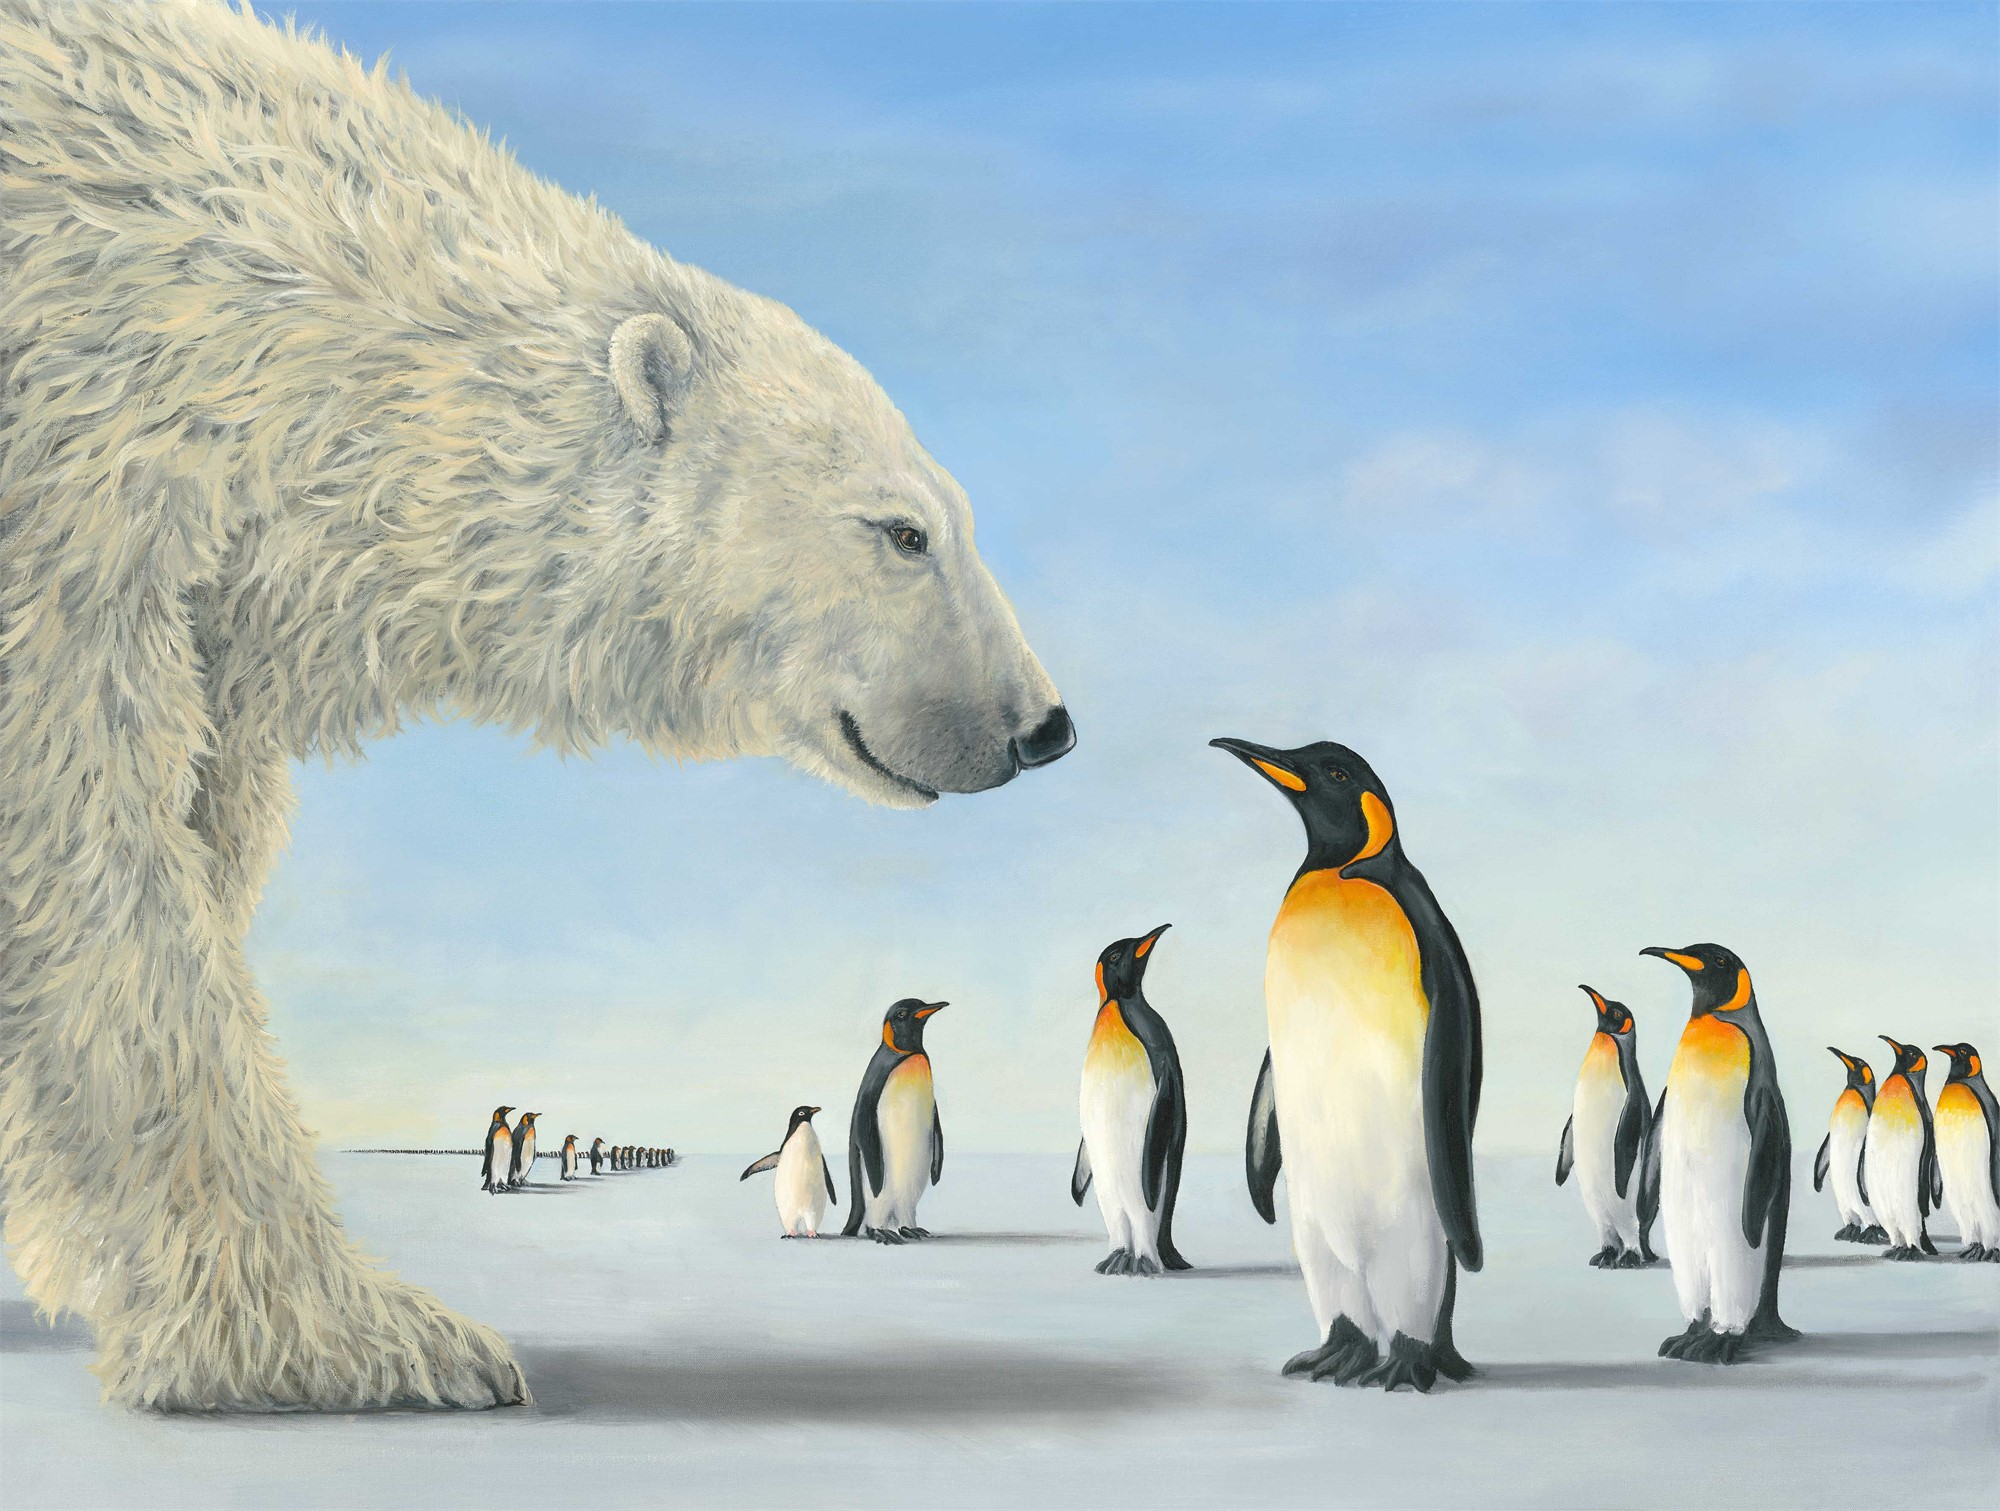 Meeting on the Ice by Robert Bissell